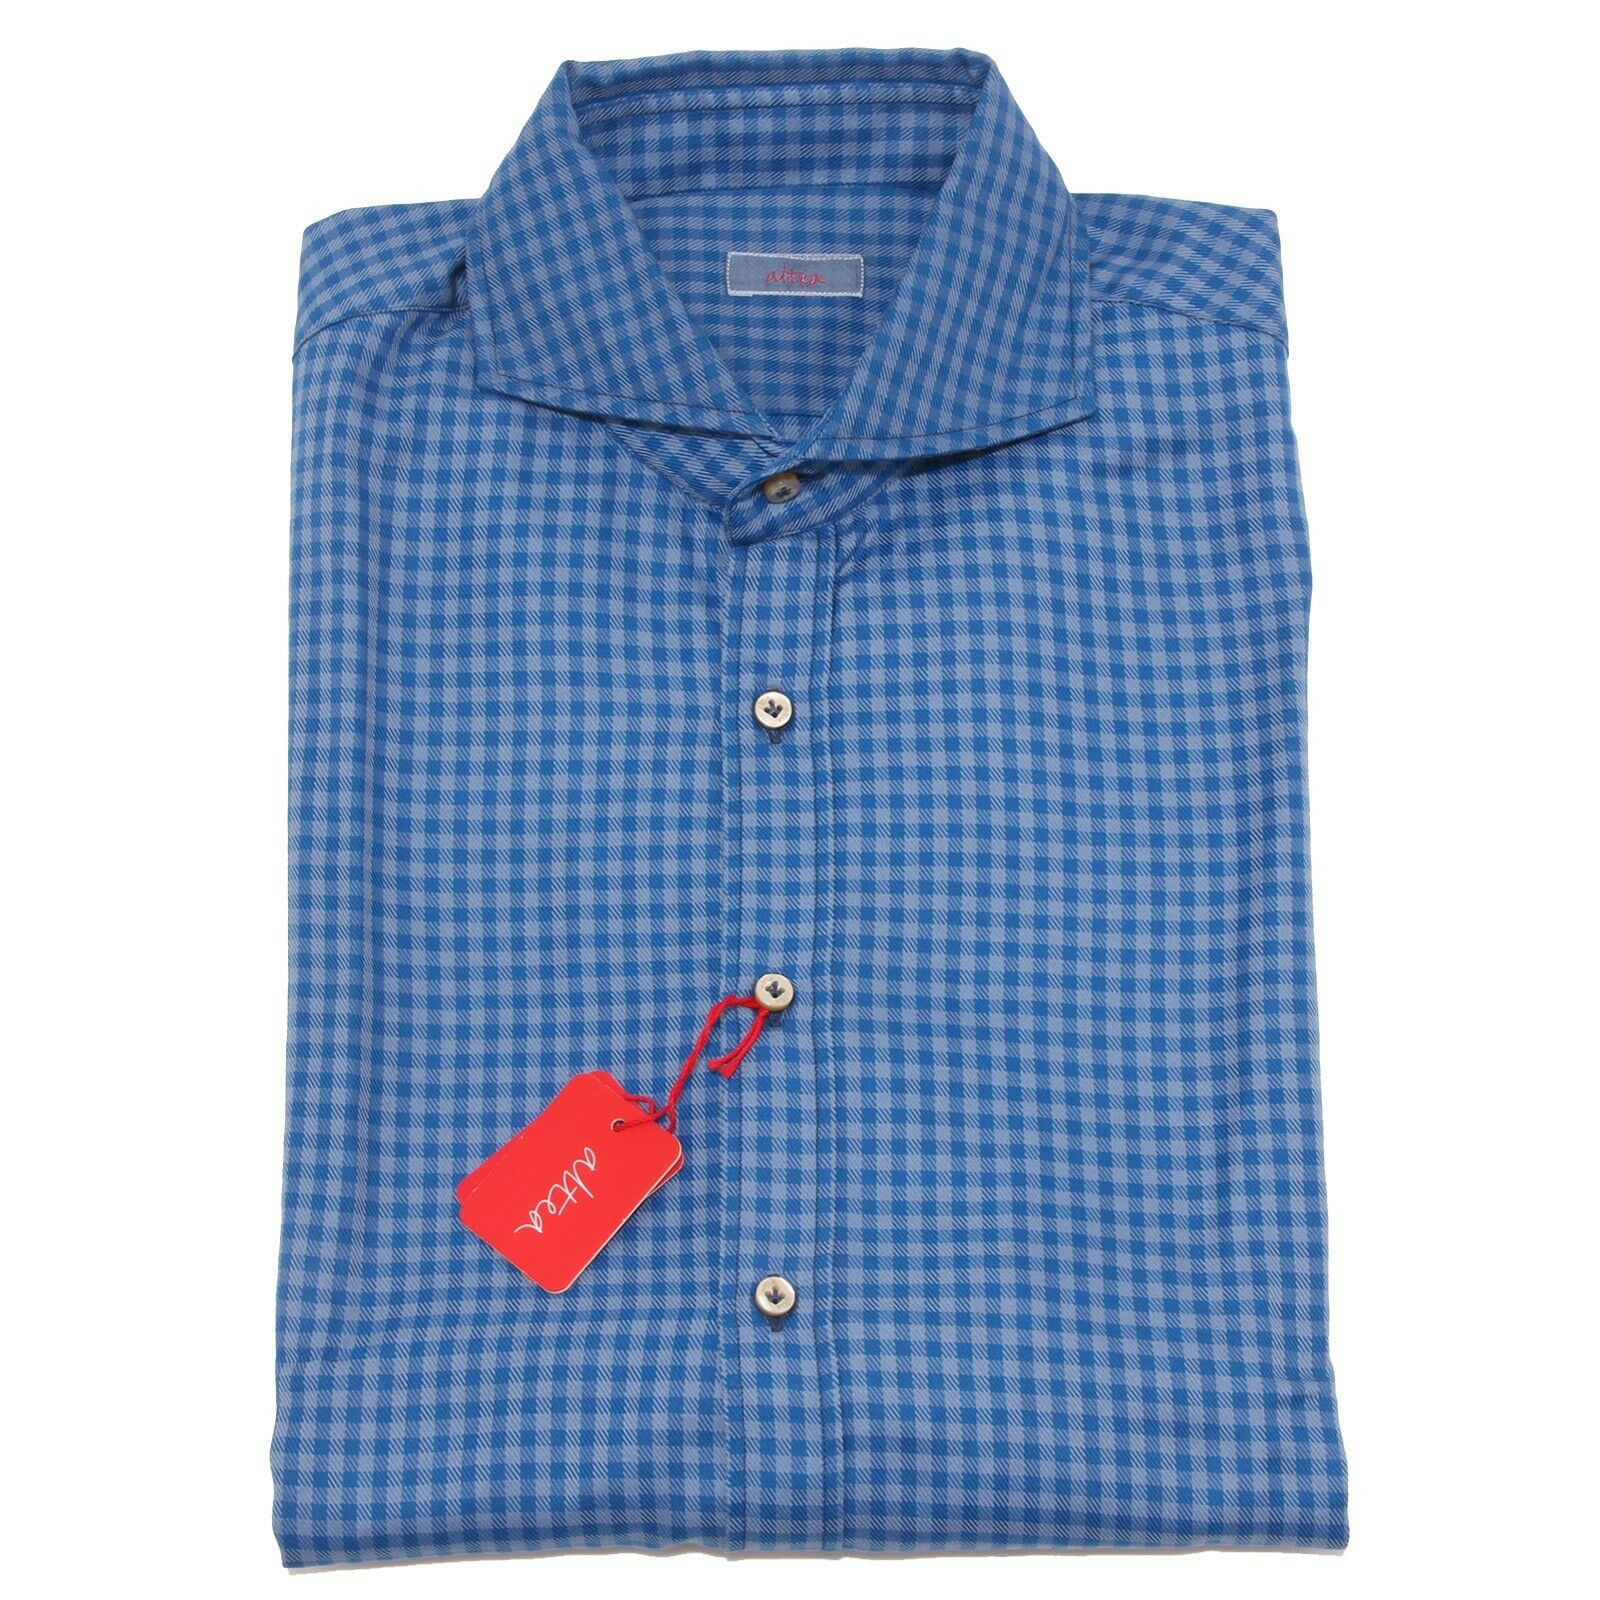 2521P camicia uomo quadretti ALTEA camicie  shirt men